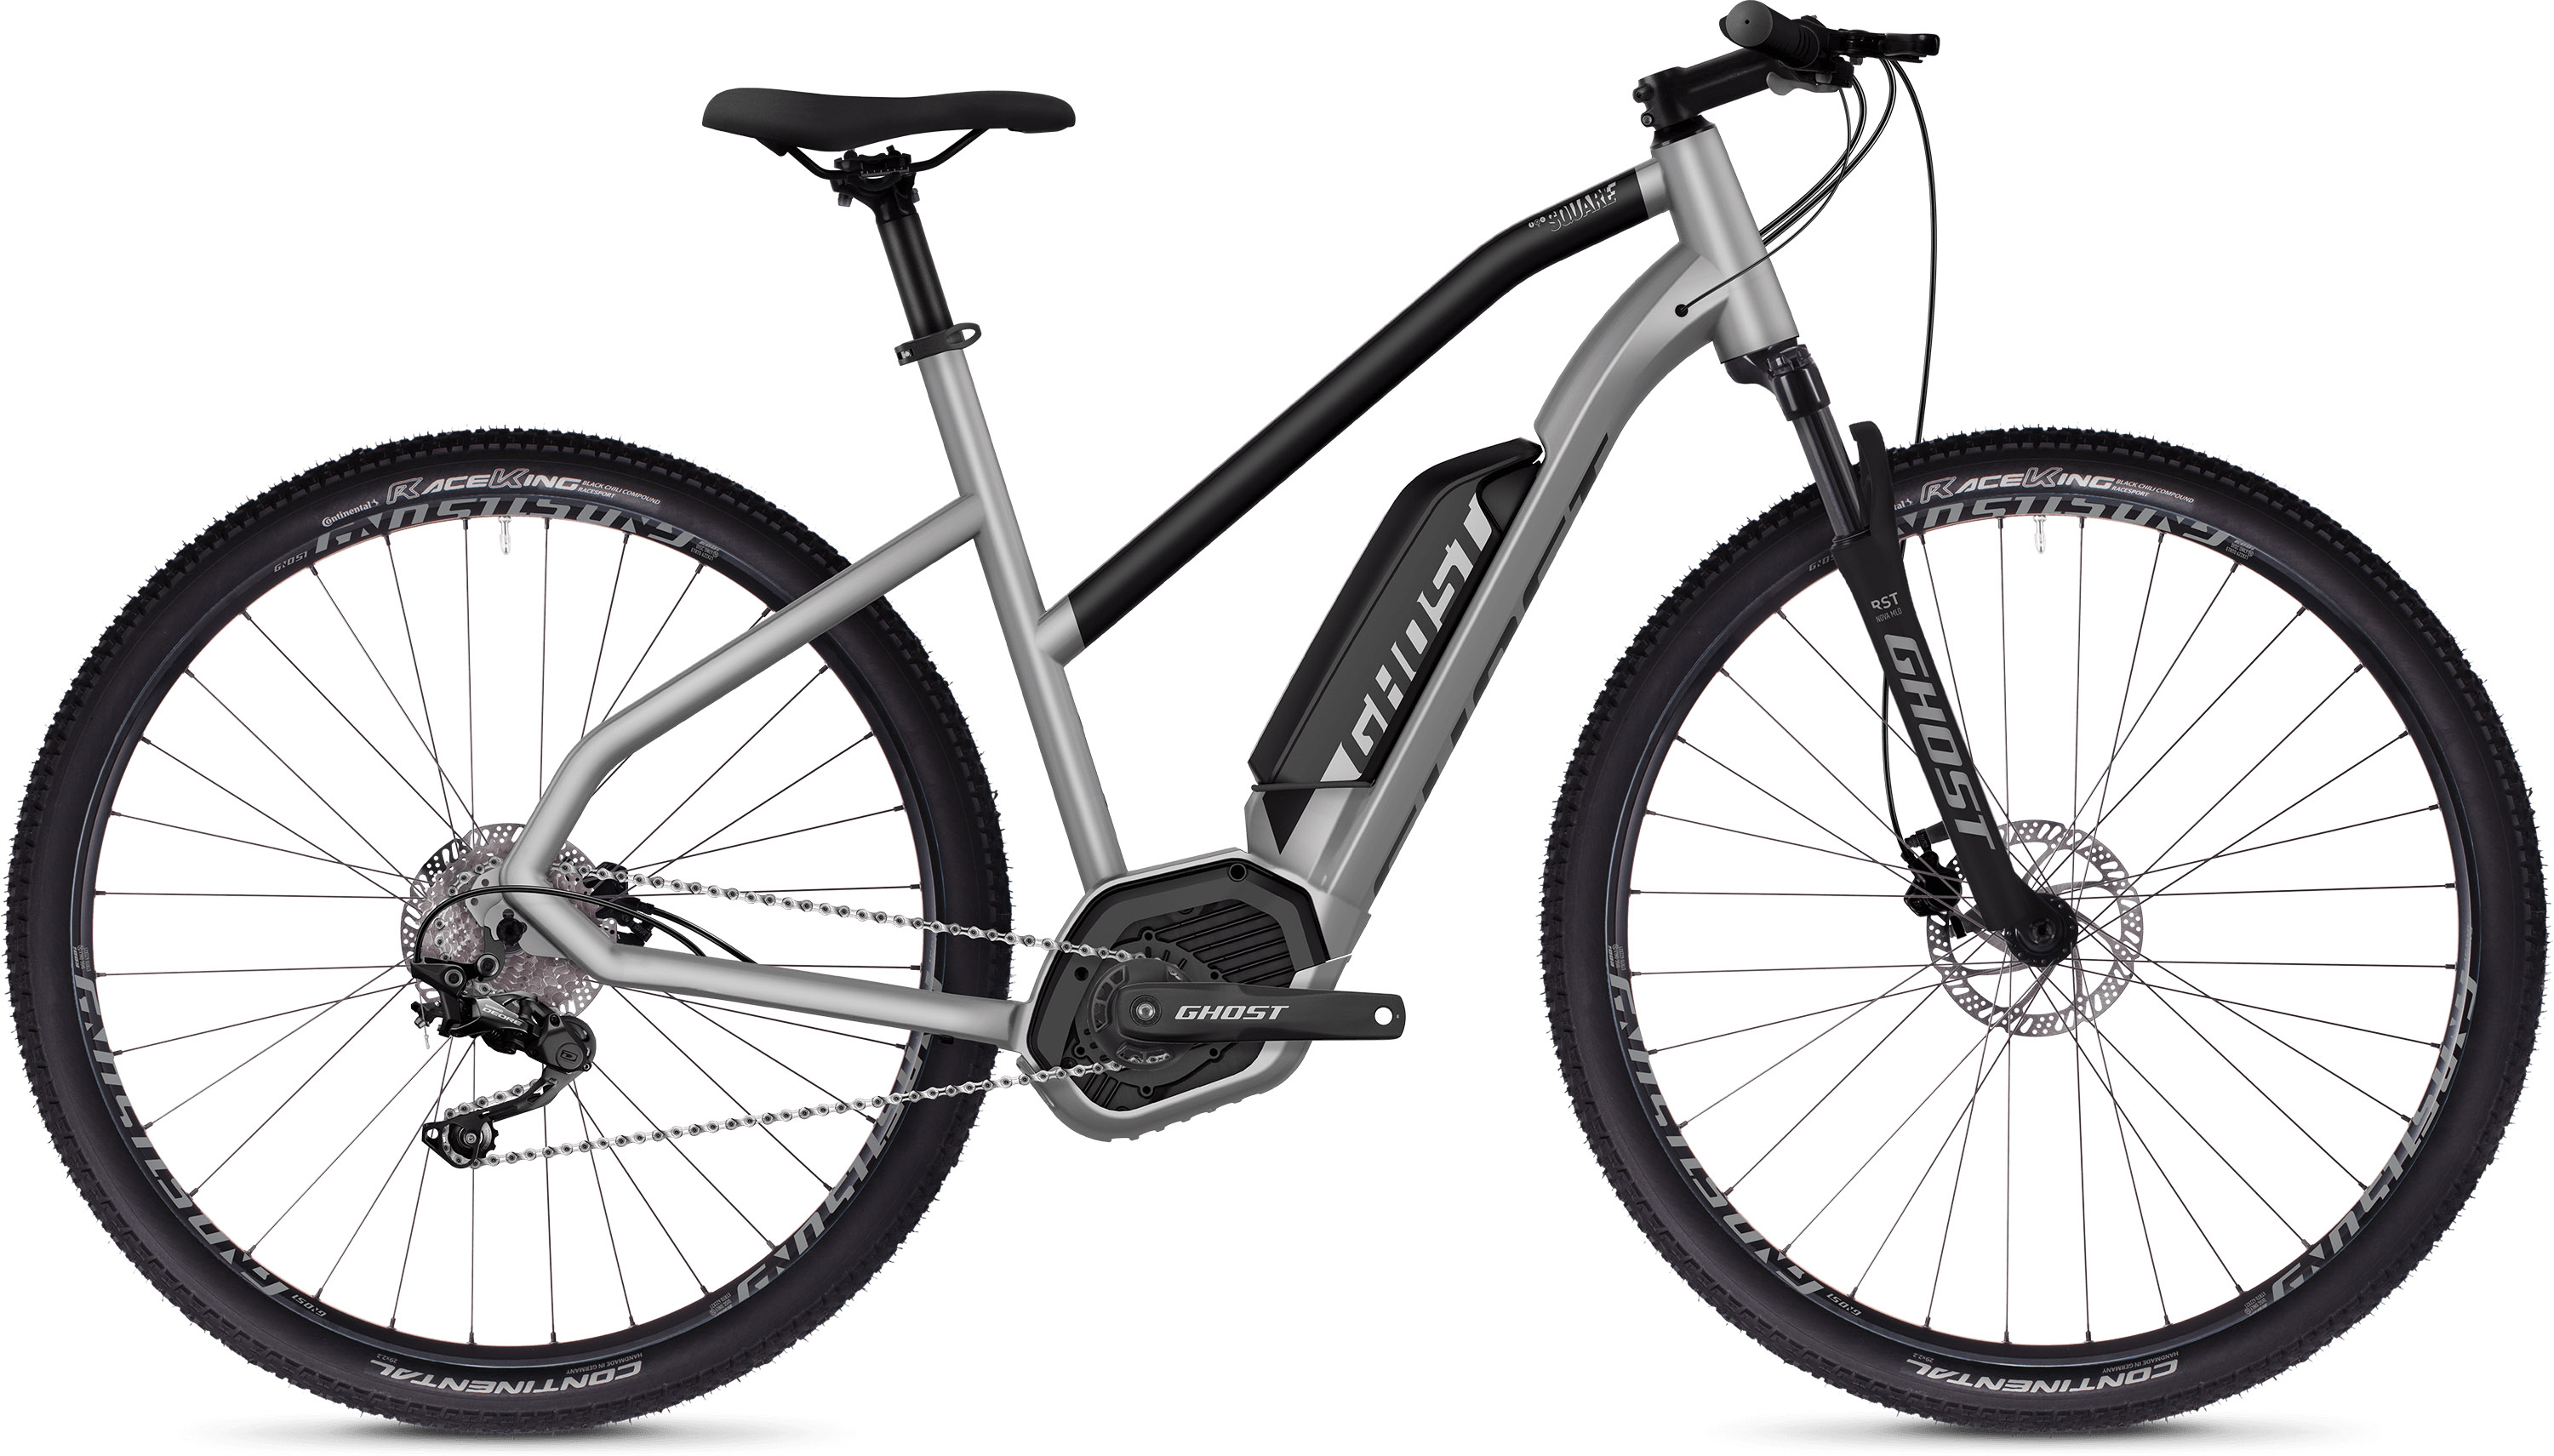 Ghost Square Cross B2.9 Women's E-Bike (2019) | City-cykler